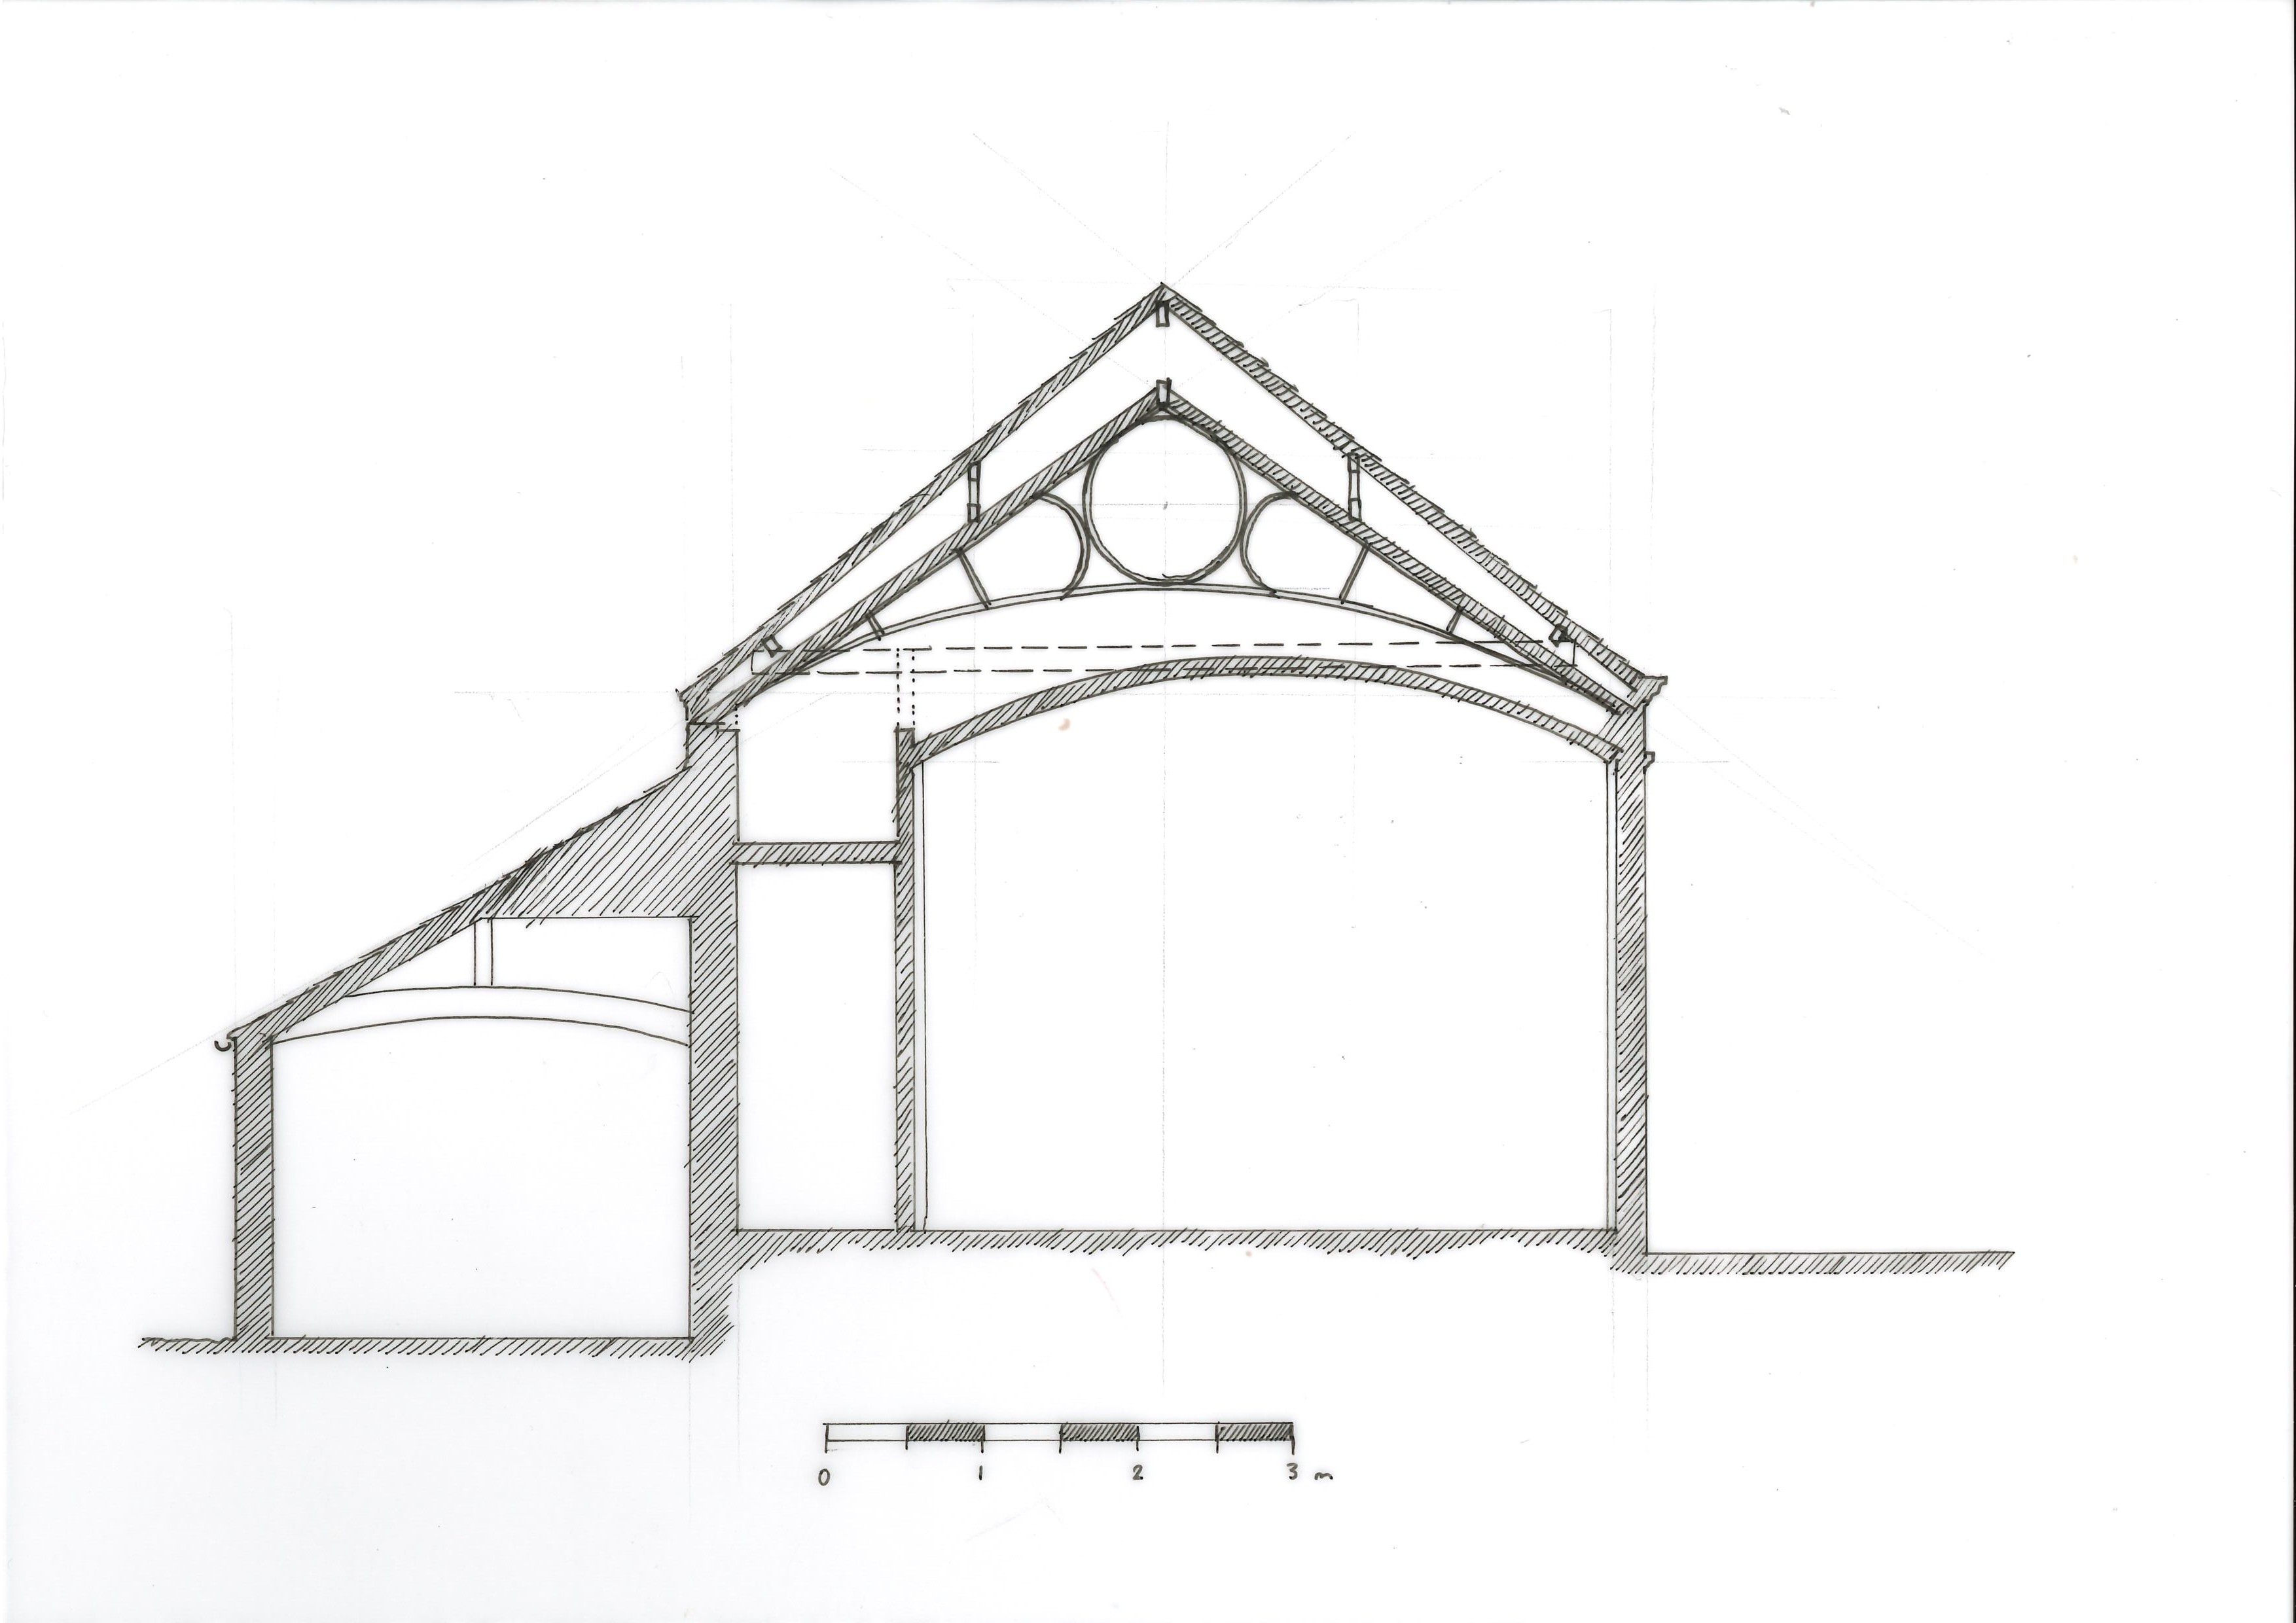 section sketch